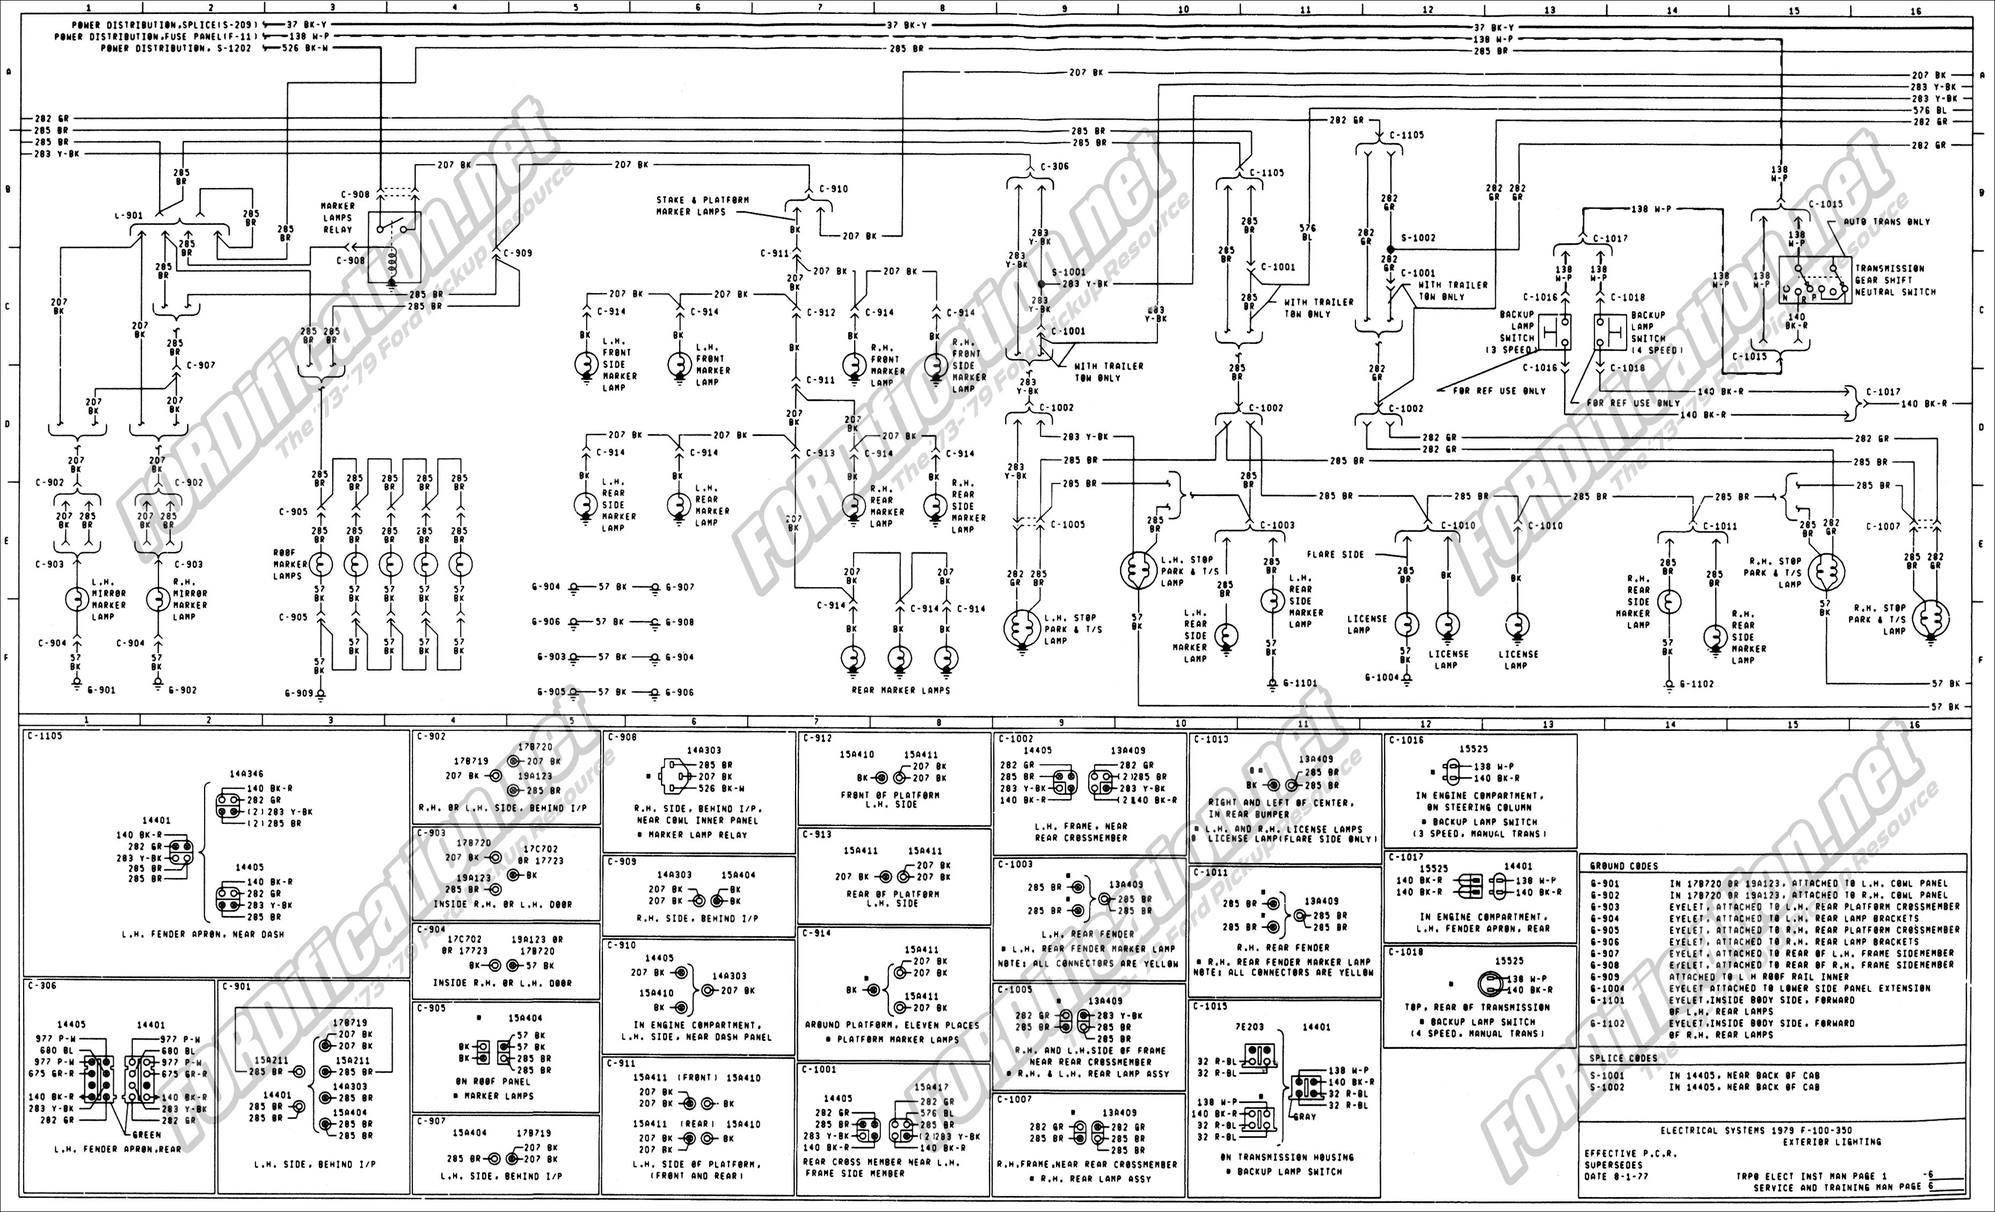 80-wiring_79master_6of9_bdc4b20f2c9a82c44d5736ffc457b3de372dd084  Gxi Volvo Penta Wiring Diagram on tilt trim, 350 chevy marine, 4 3gl starter, marine engines, ignition switch, trim pump, trim system, 5.0 gl alternator,